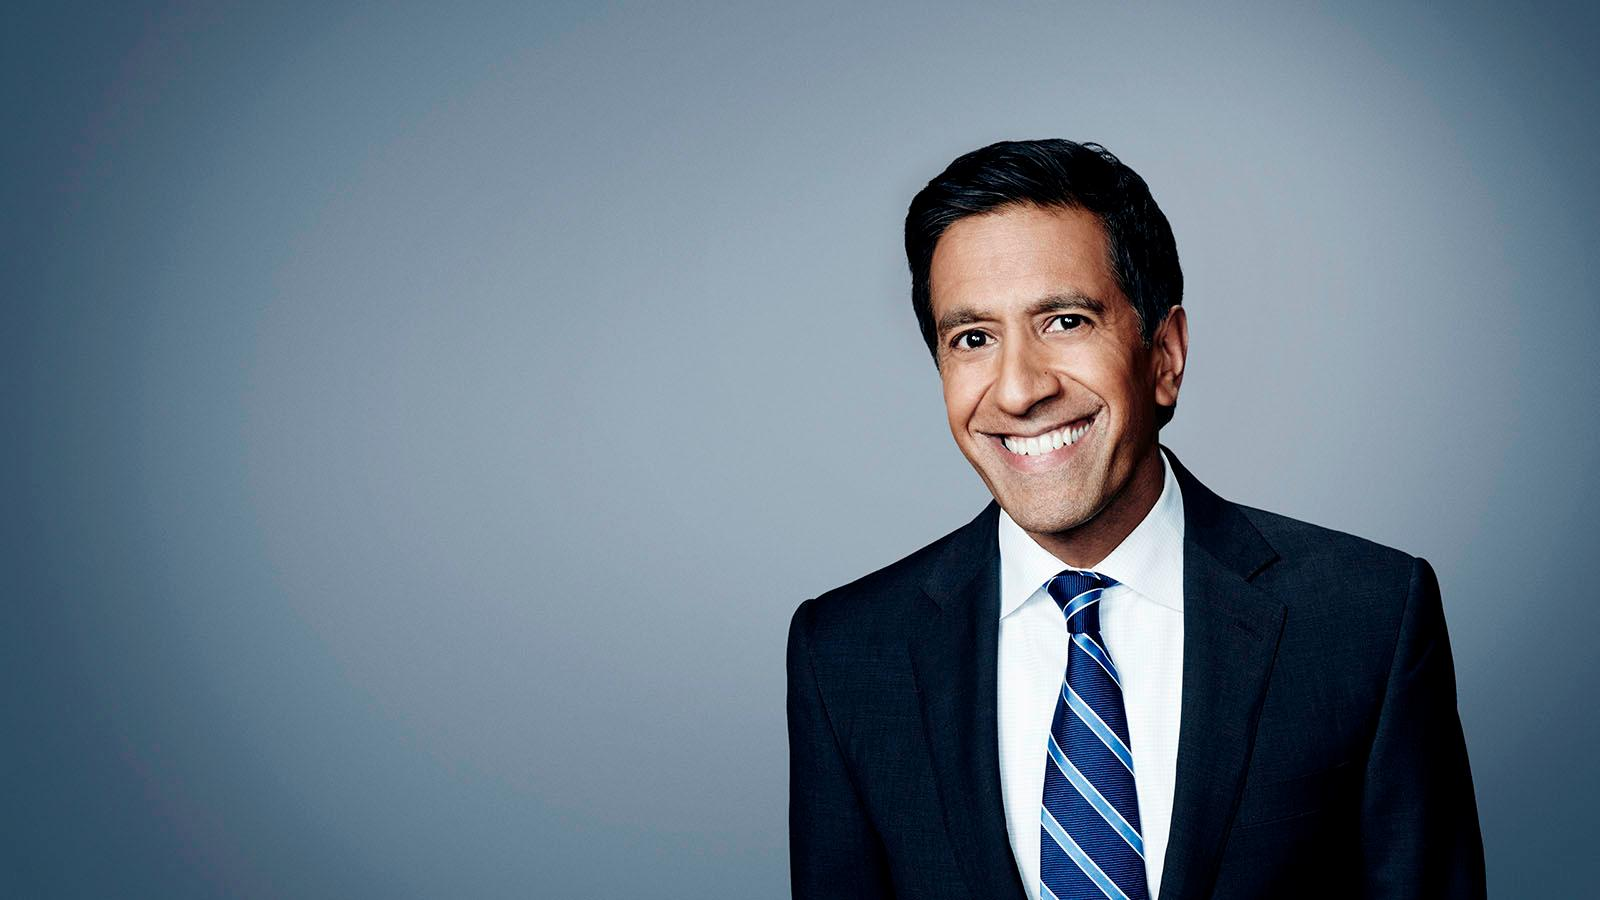 Sanjay Gupta Highest Paid Doctors in The World